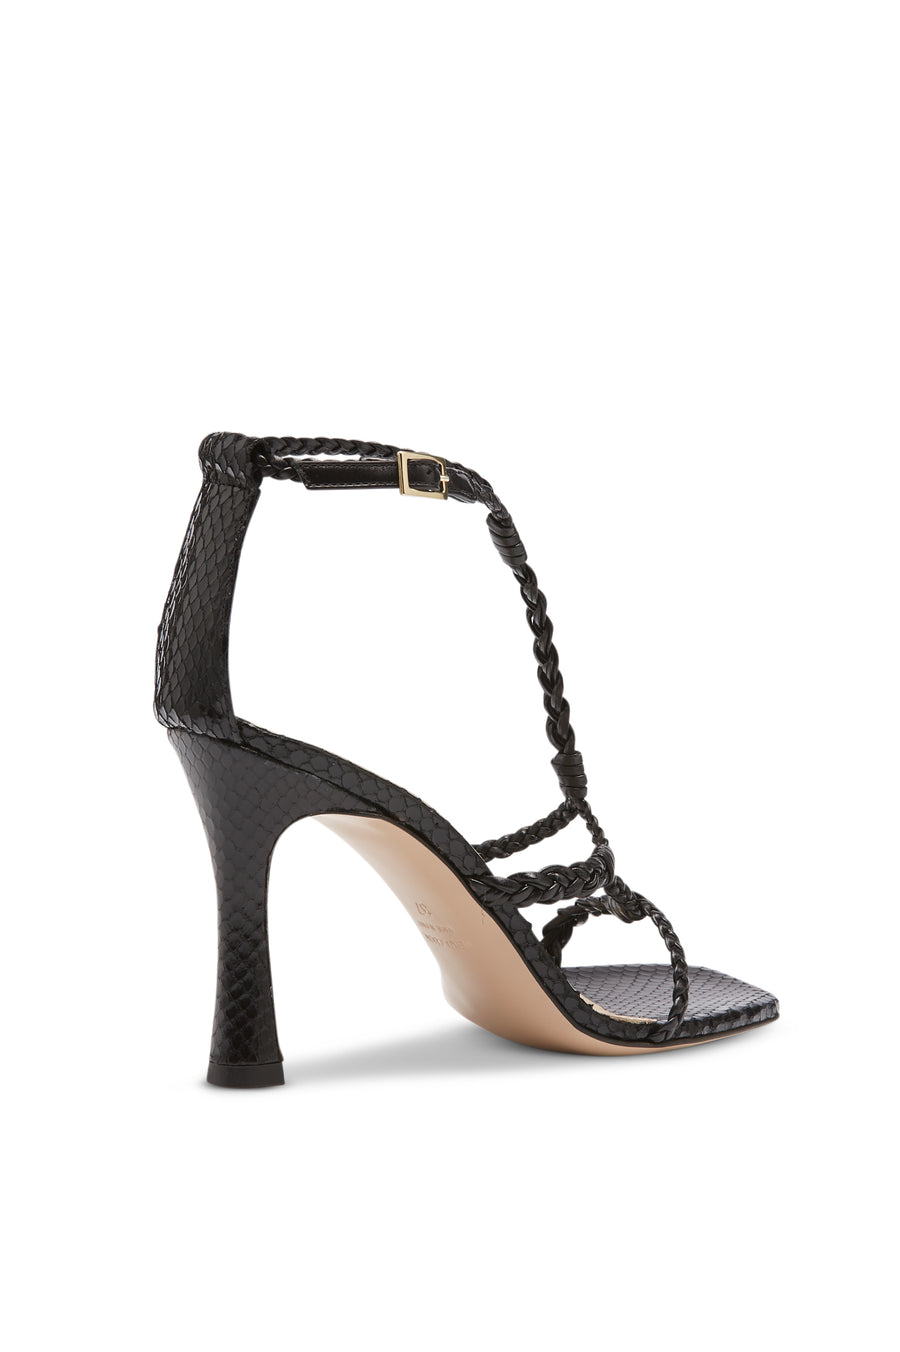 PLAITED SANDAL 9.5 NERO